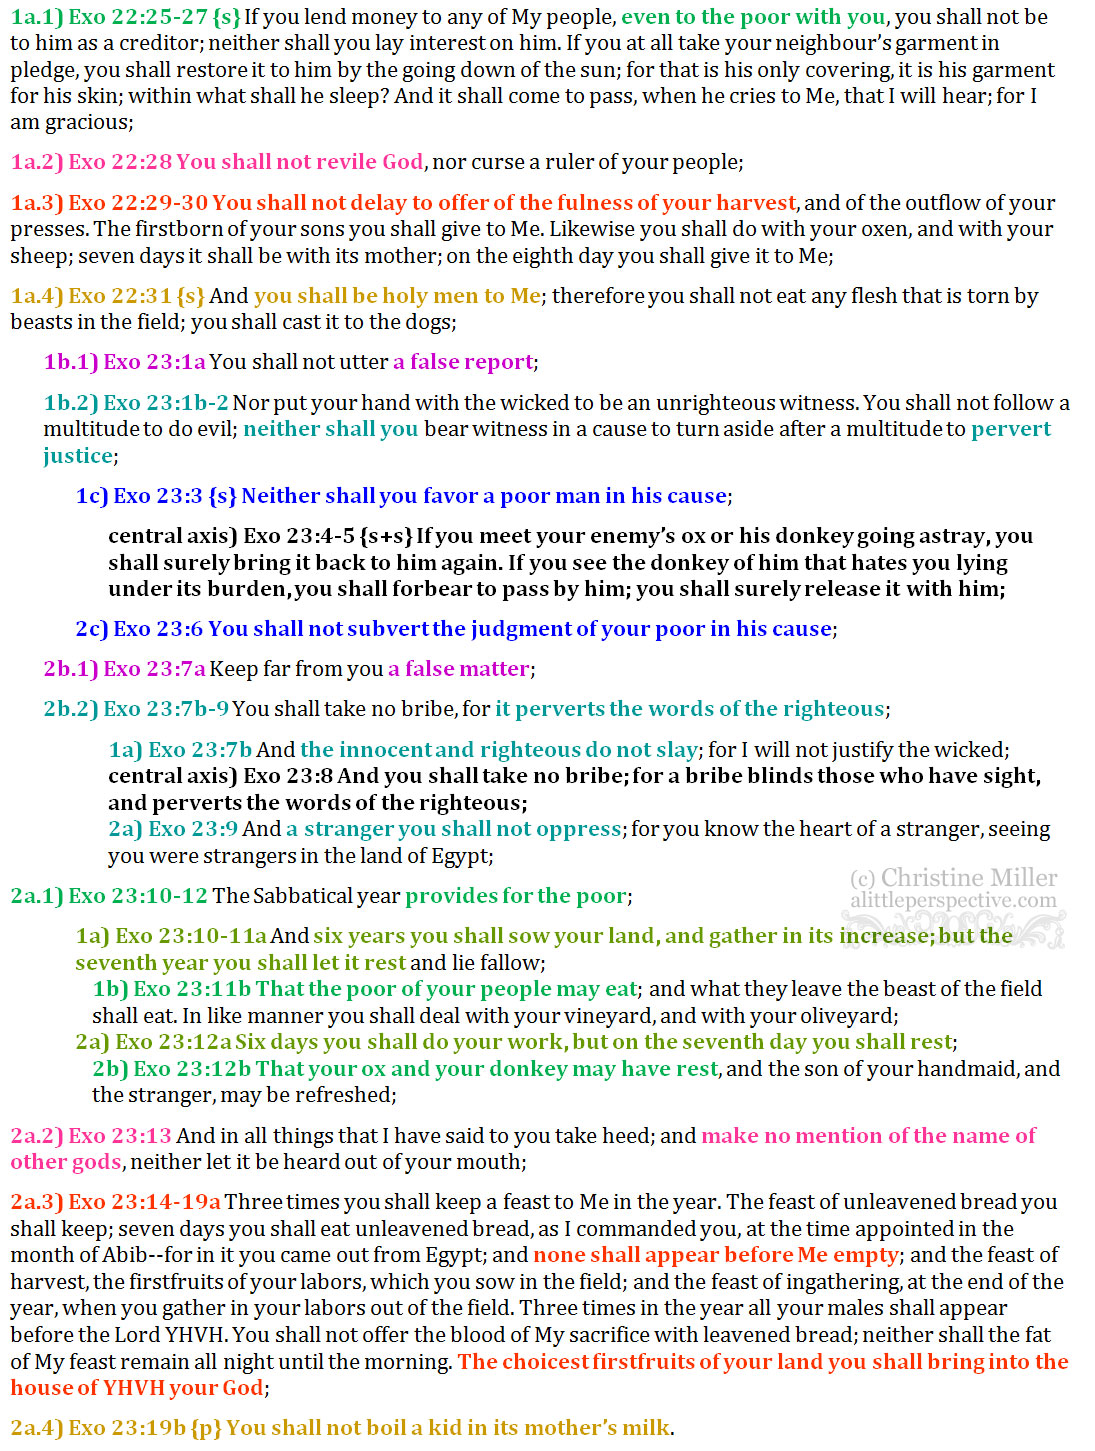 Exo 22:25-23:19 chiasm | christine's bible study at alittleperspective.com